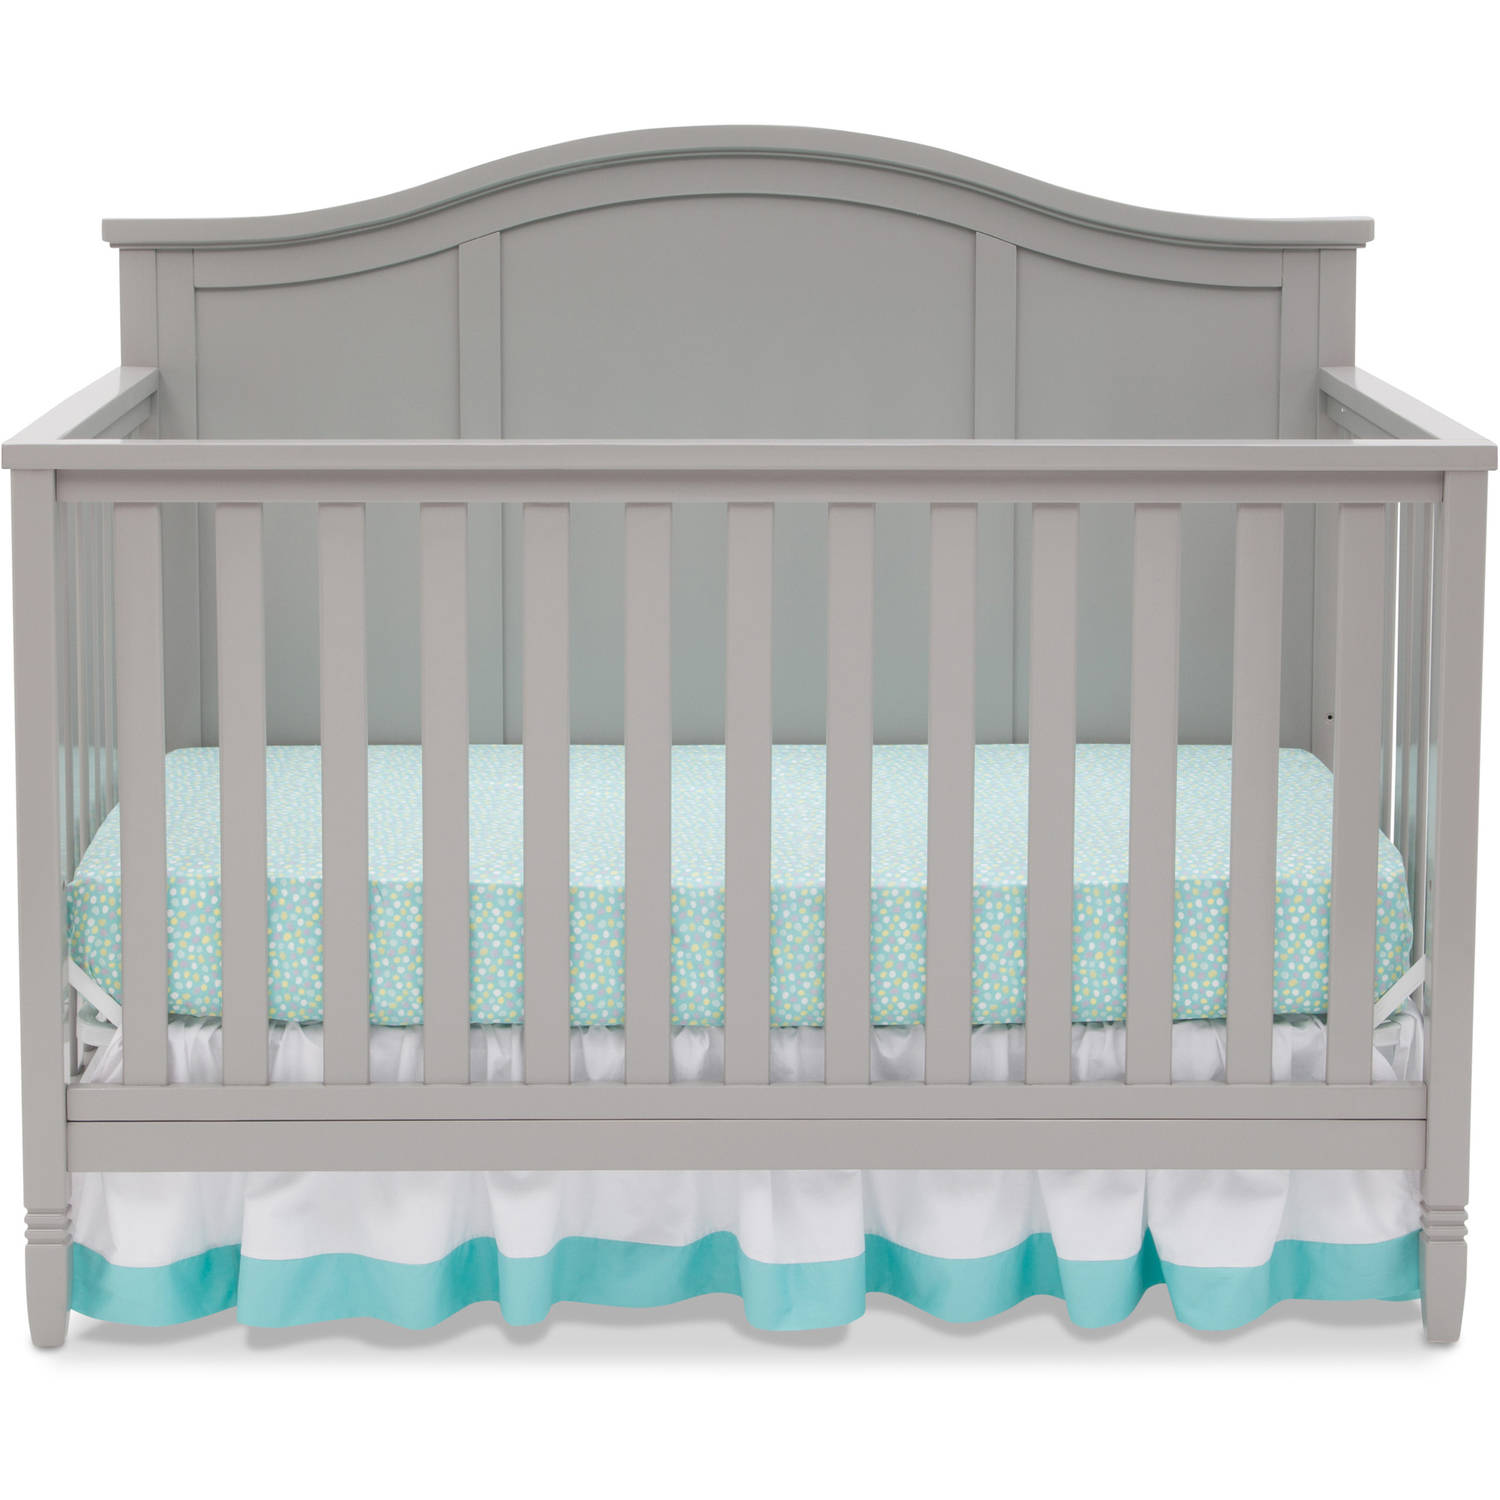 These Swinging Cribs For Babies Are The Best Choices-Pros And Cons Of Each Model